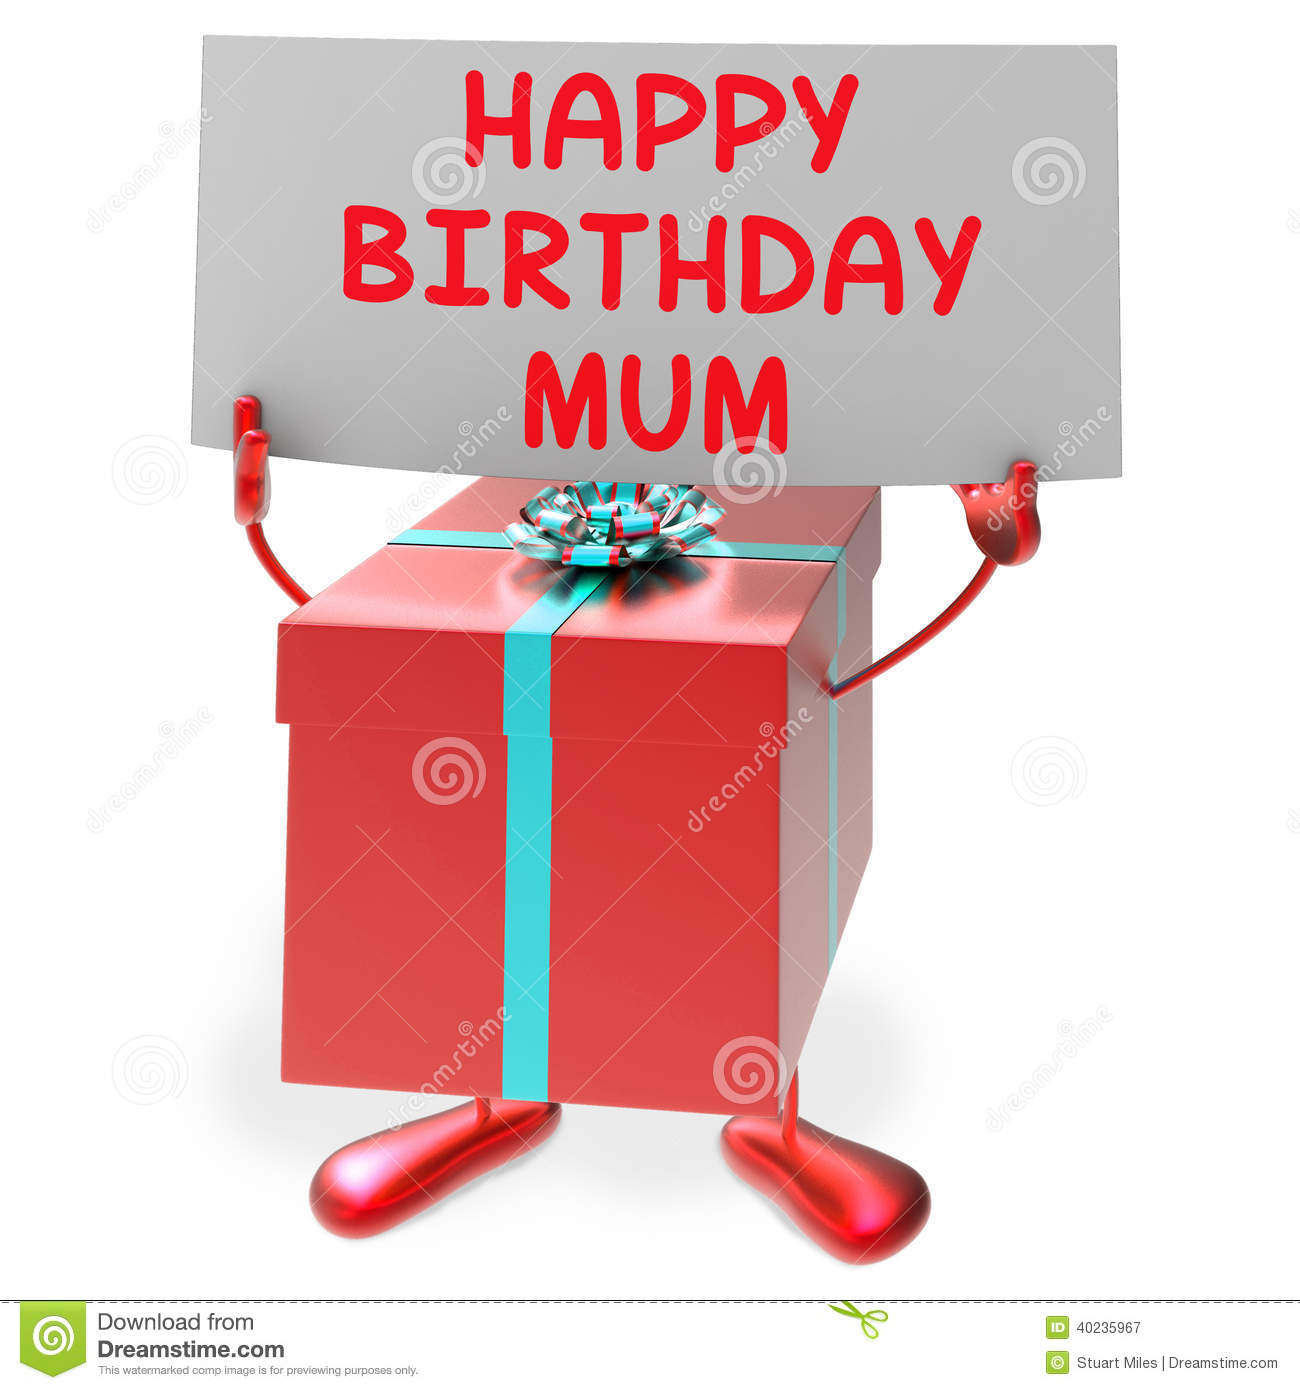 Happy Birthday Mum Means Presents For Mother Stock